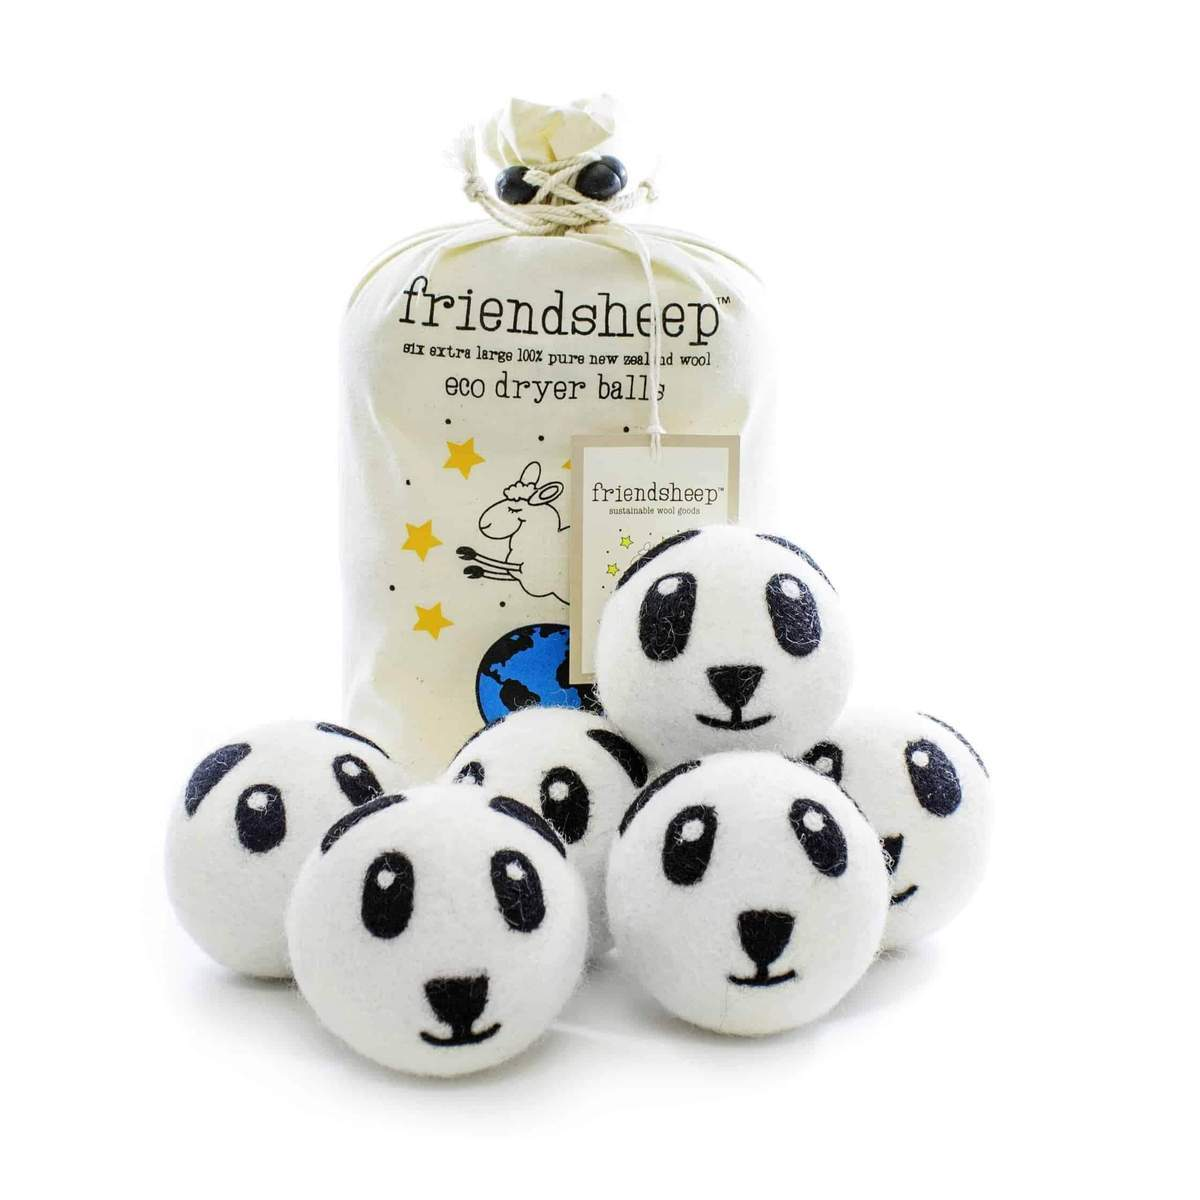 Friendsheep Eco Dryer Balls Pack of 6 - Panda Pack